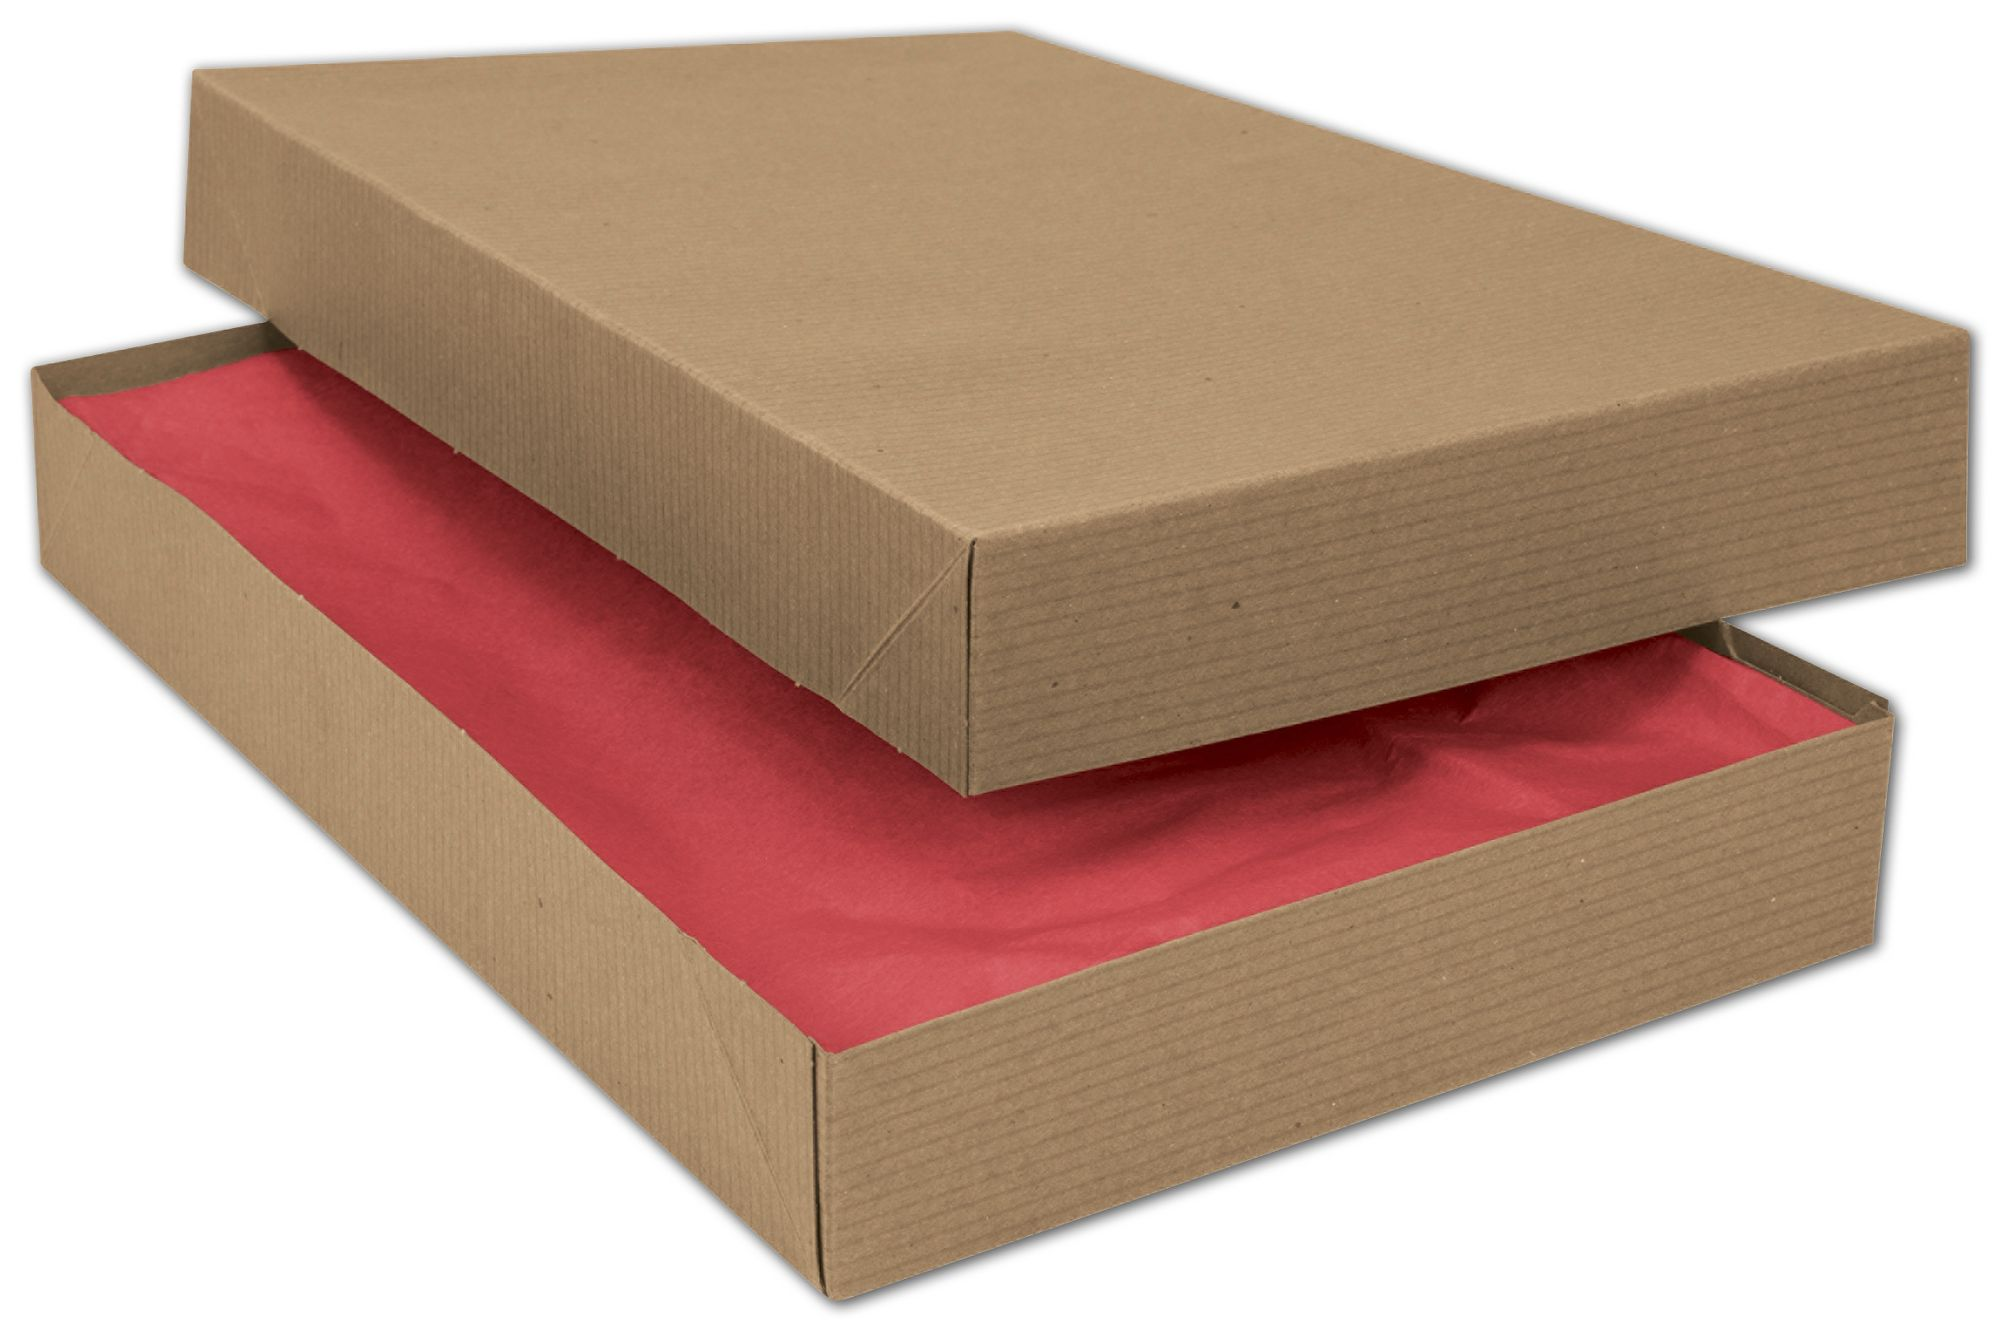 "Kraft Two-Piece Apparel Boxes, 15 x 9 1/2 x 2"" (100 Boxes) - BOWS-51-150902C-8"